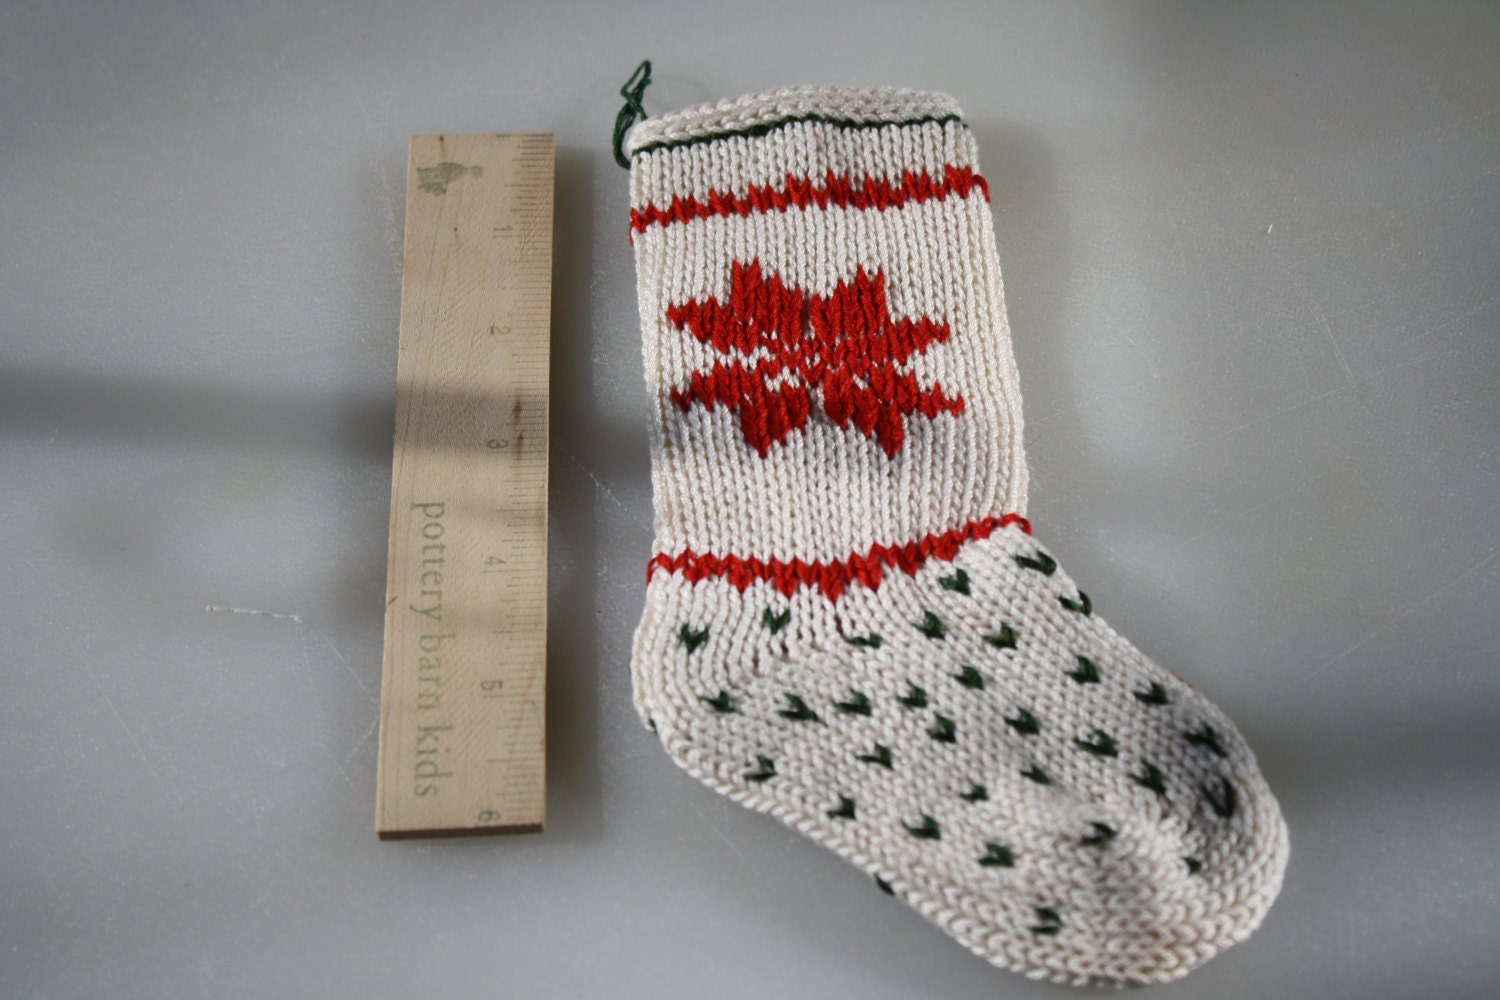 Mini Knit Christmas Stocking embroidered handsewn gifts crafts needlework